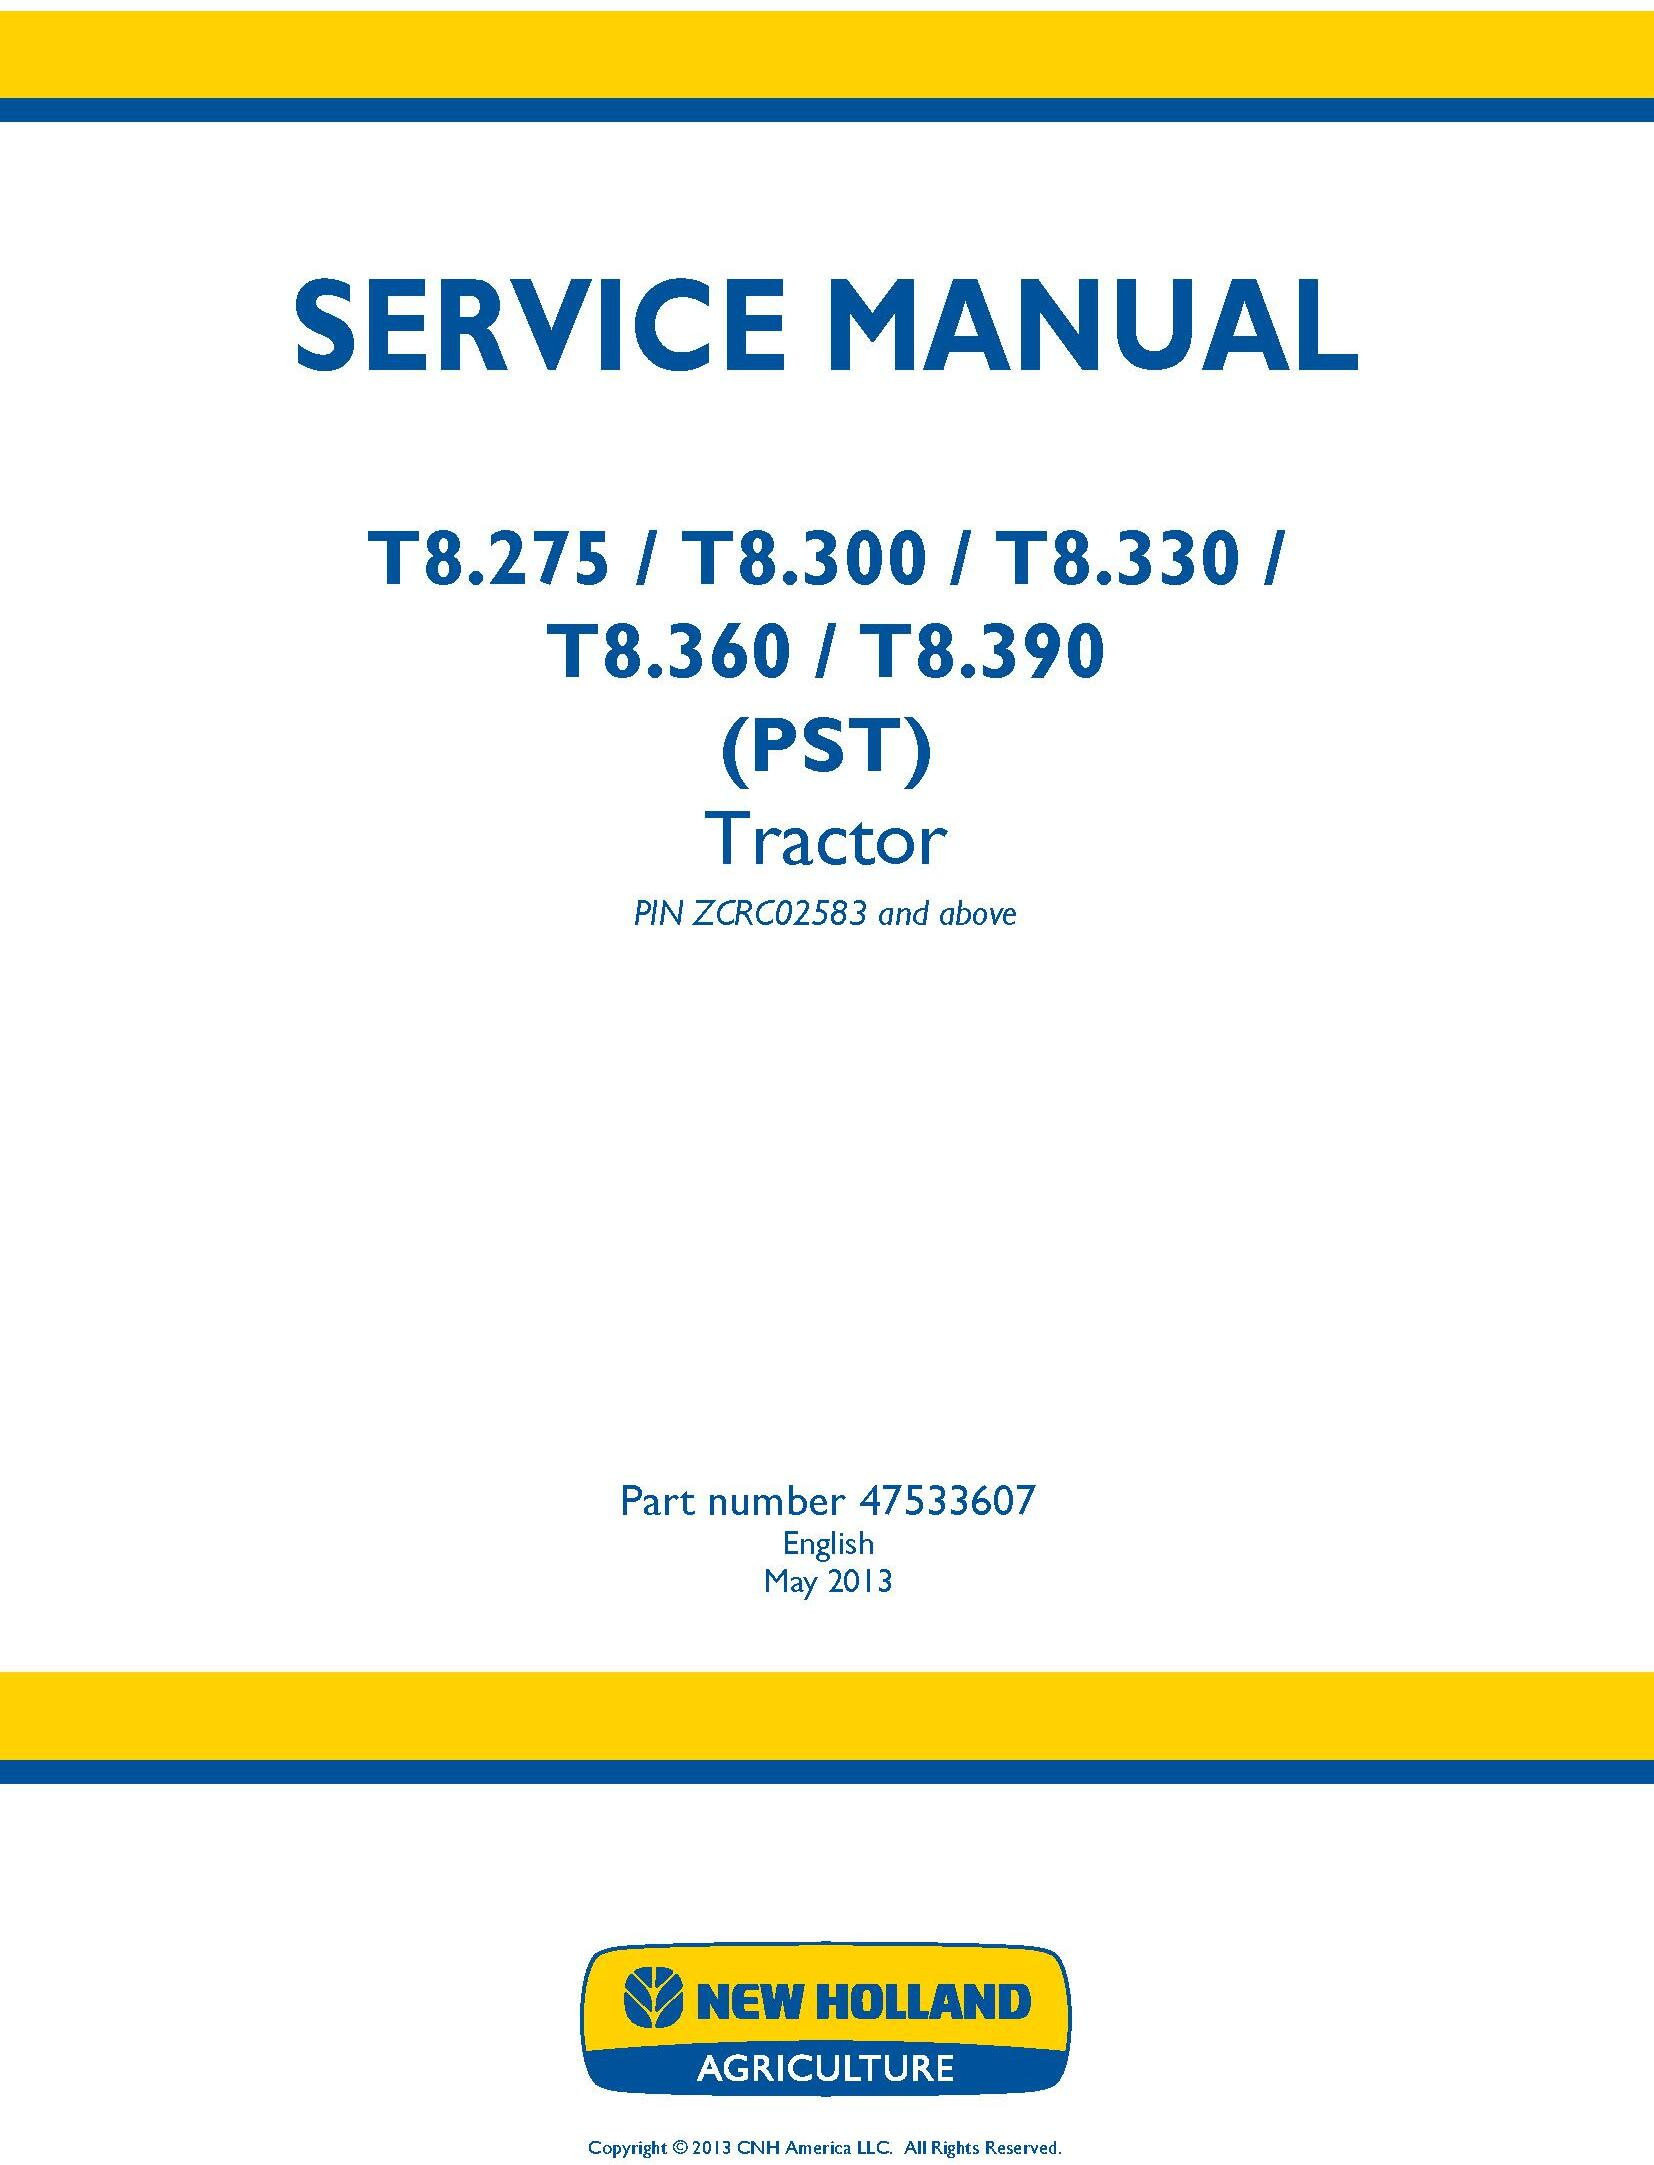 New Holland T8.275, T8.300, T8.330, T8.360, T8.390 (PST) Tractor (PIN ZCRC02583-) Service Manual - 19391